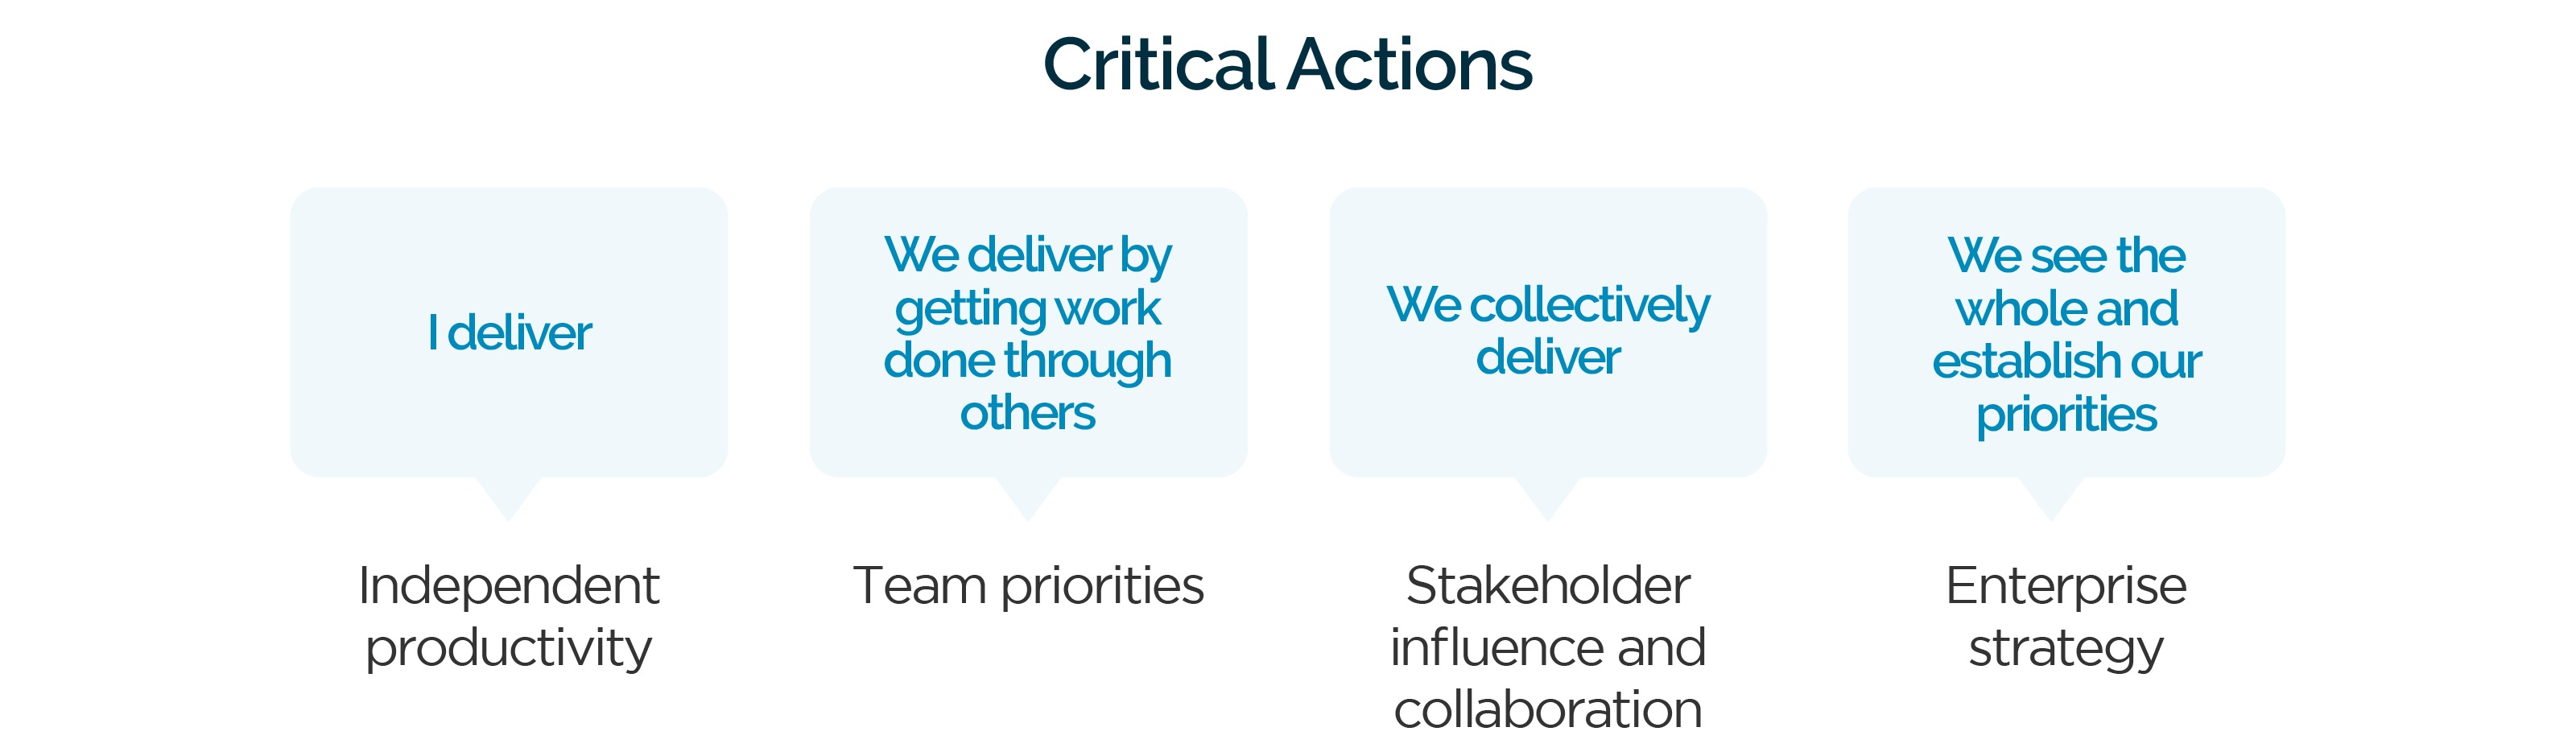 a-leaders-journey-critical-actions-2